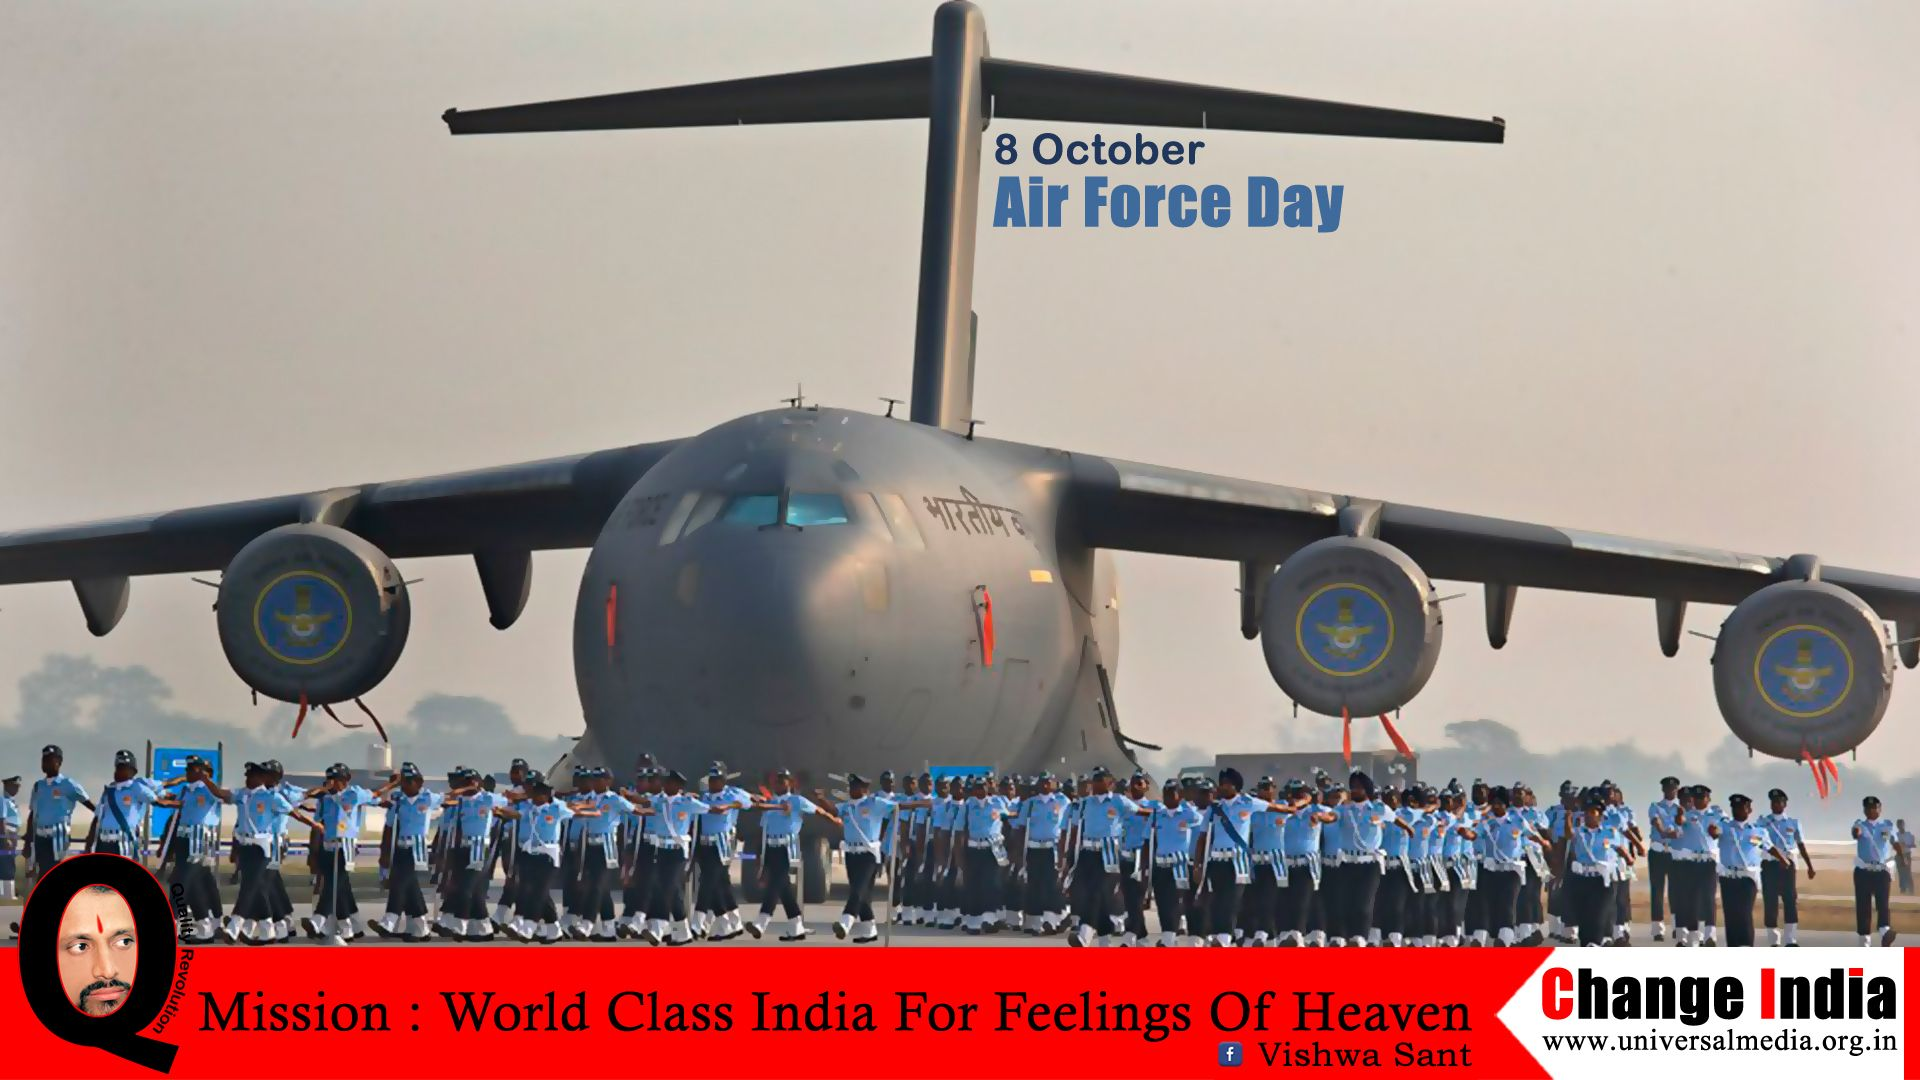 Pin by Universal Media on Festivals Indian air force